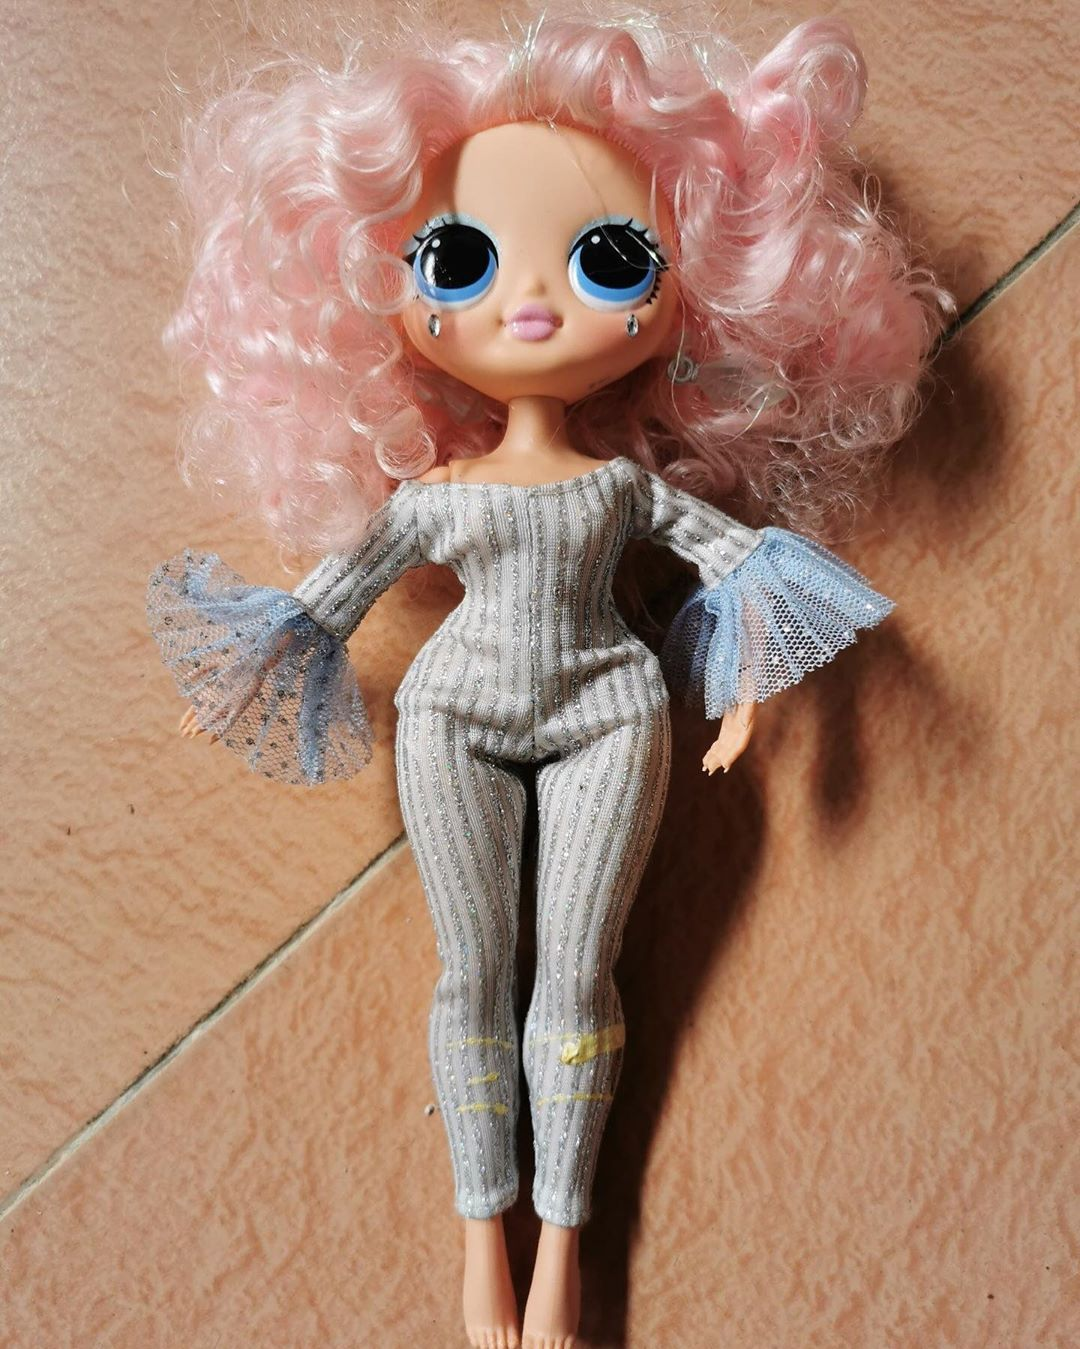 New Lol Surprise Omg Winter Disco Holiday Surprise Dolls Are Coming And We Have Spoiler About Omg Snow Angel Youloveit Com